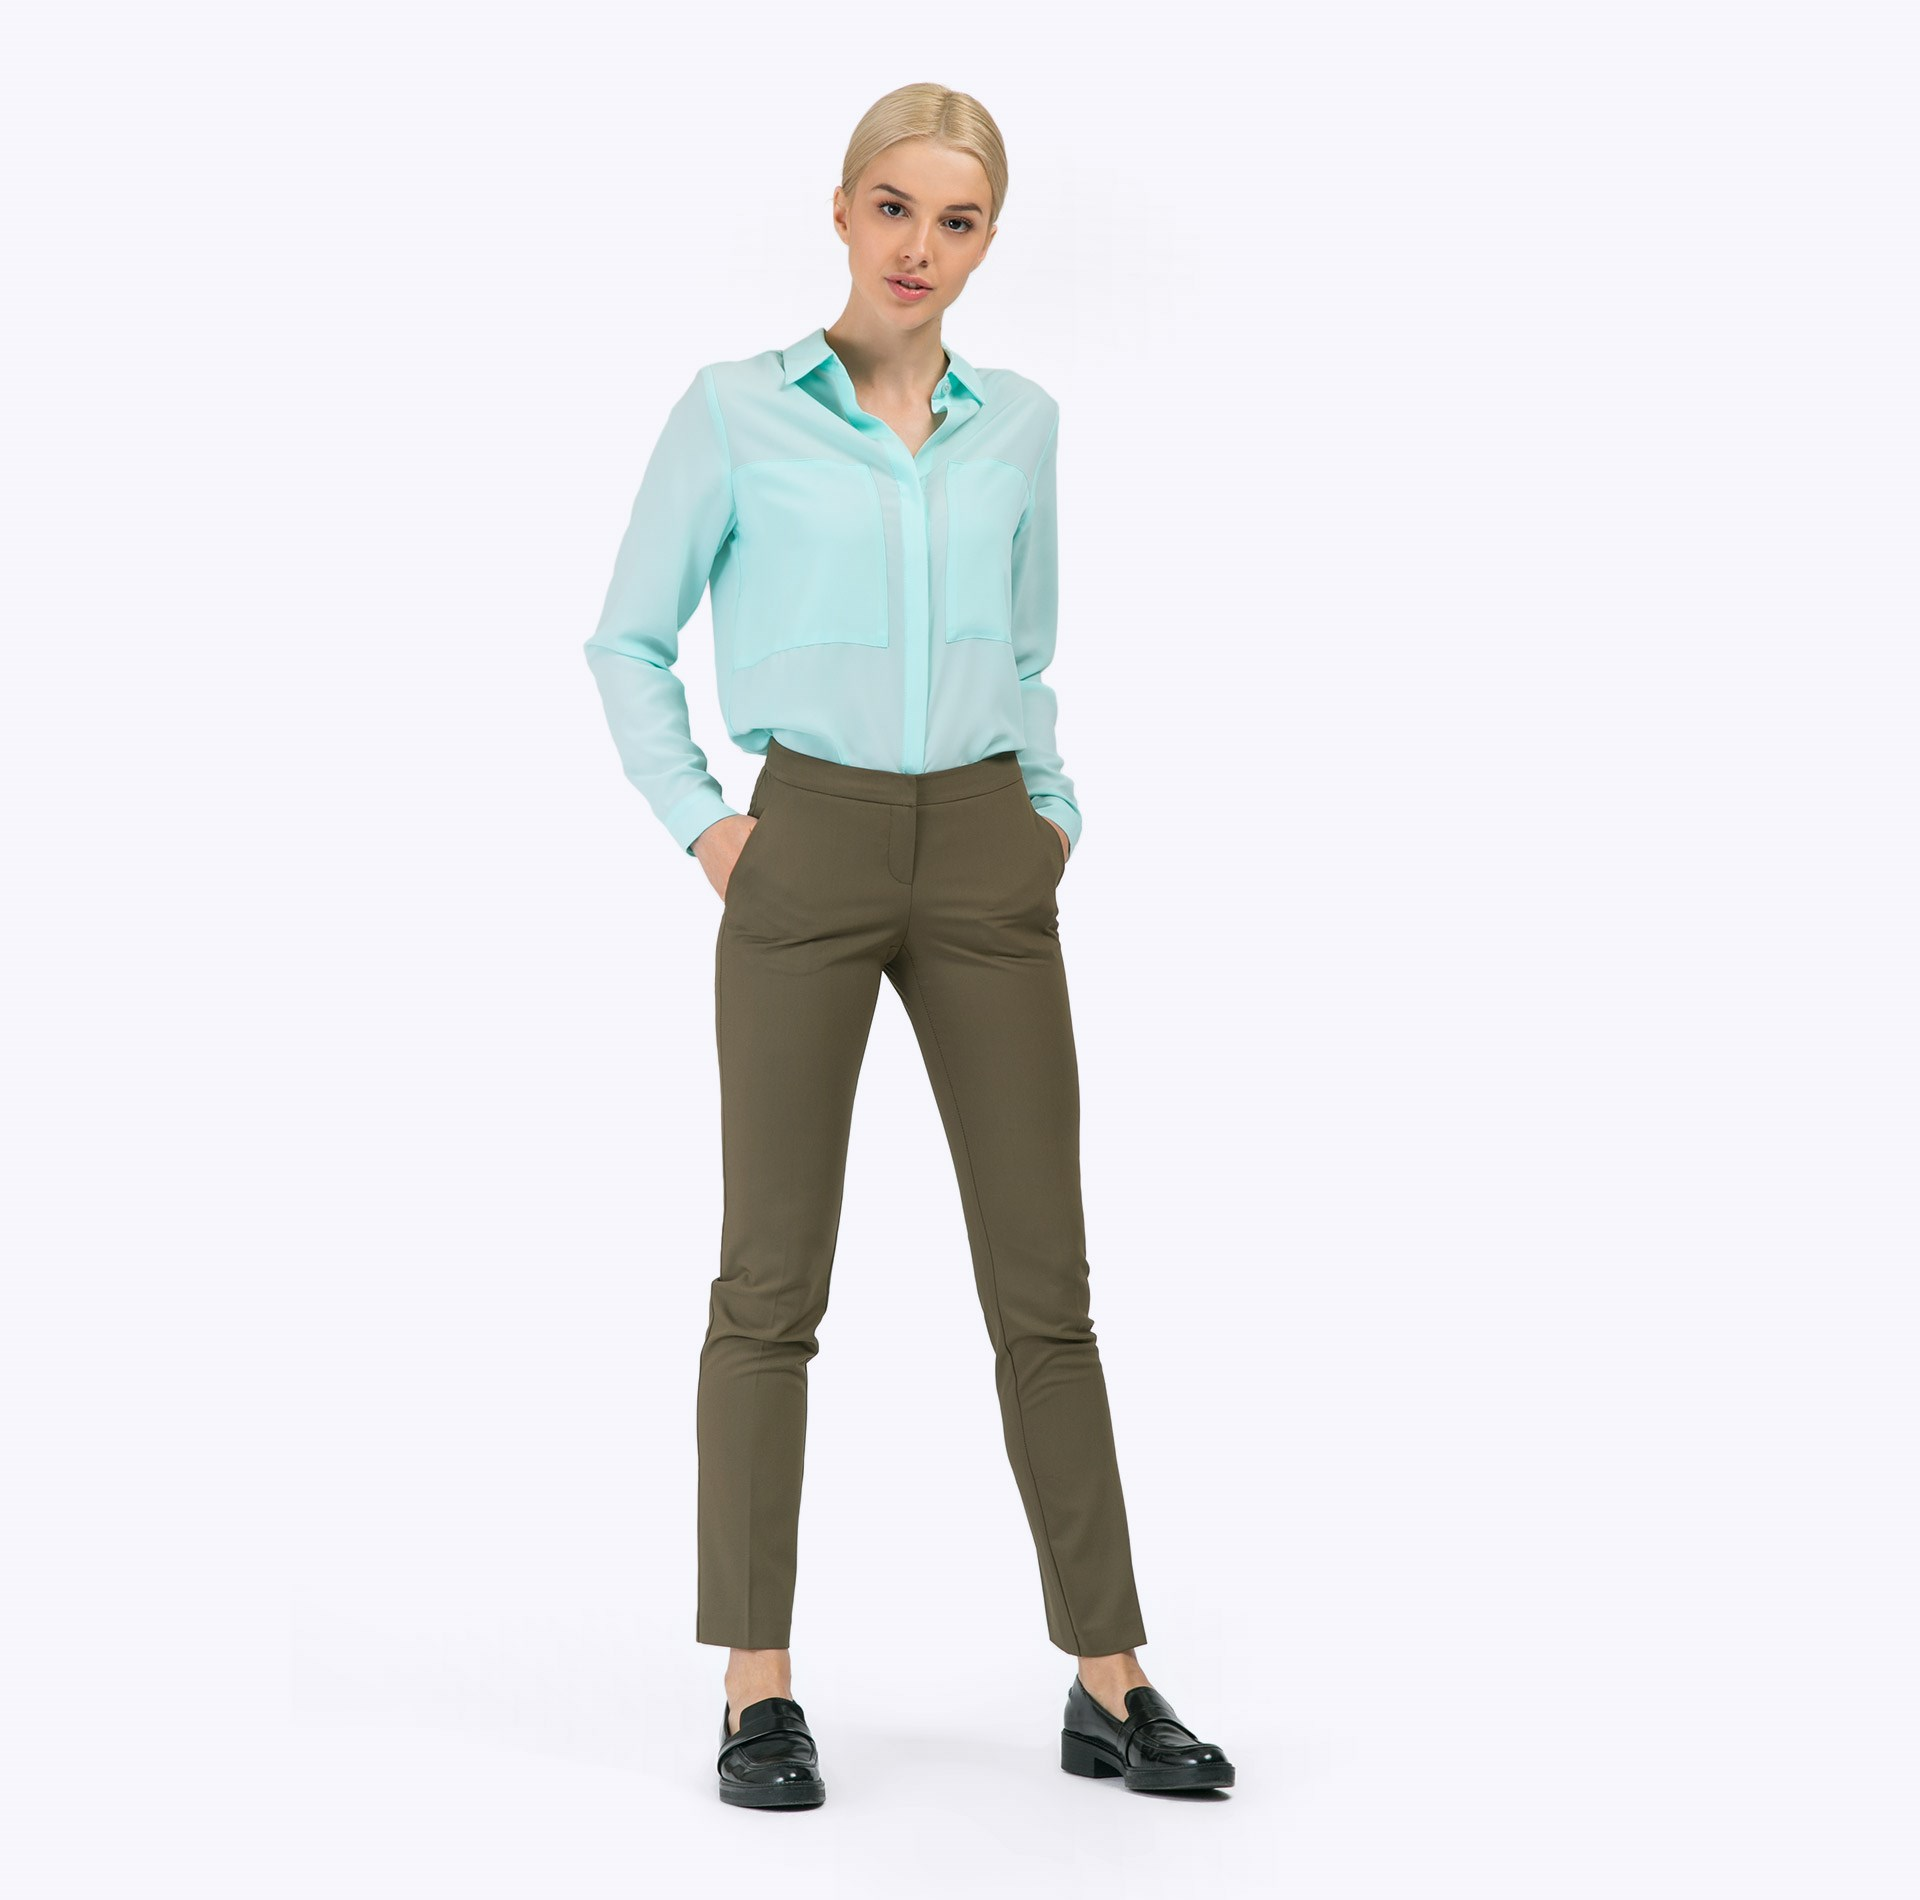 Item number D051/rise Pants item number b2275 galsana blouse straight cut